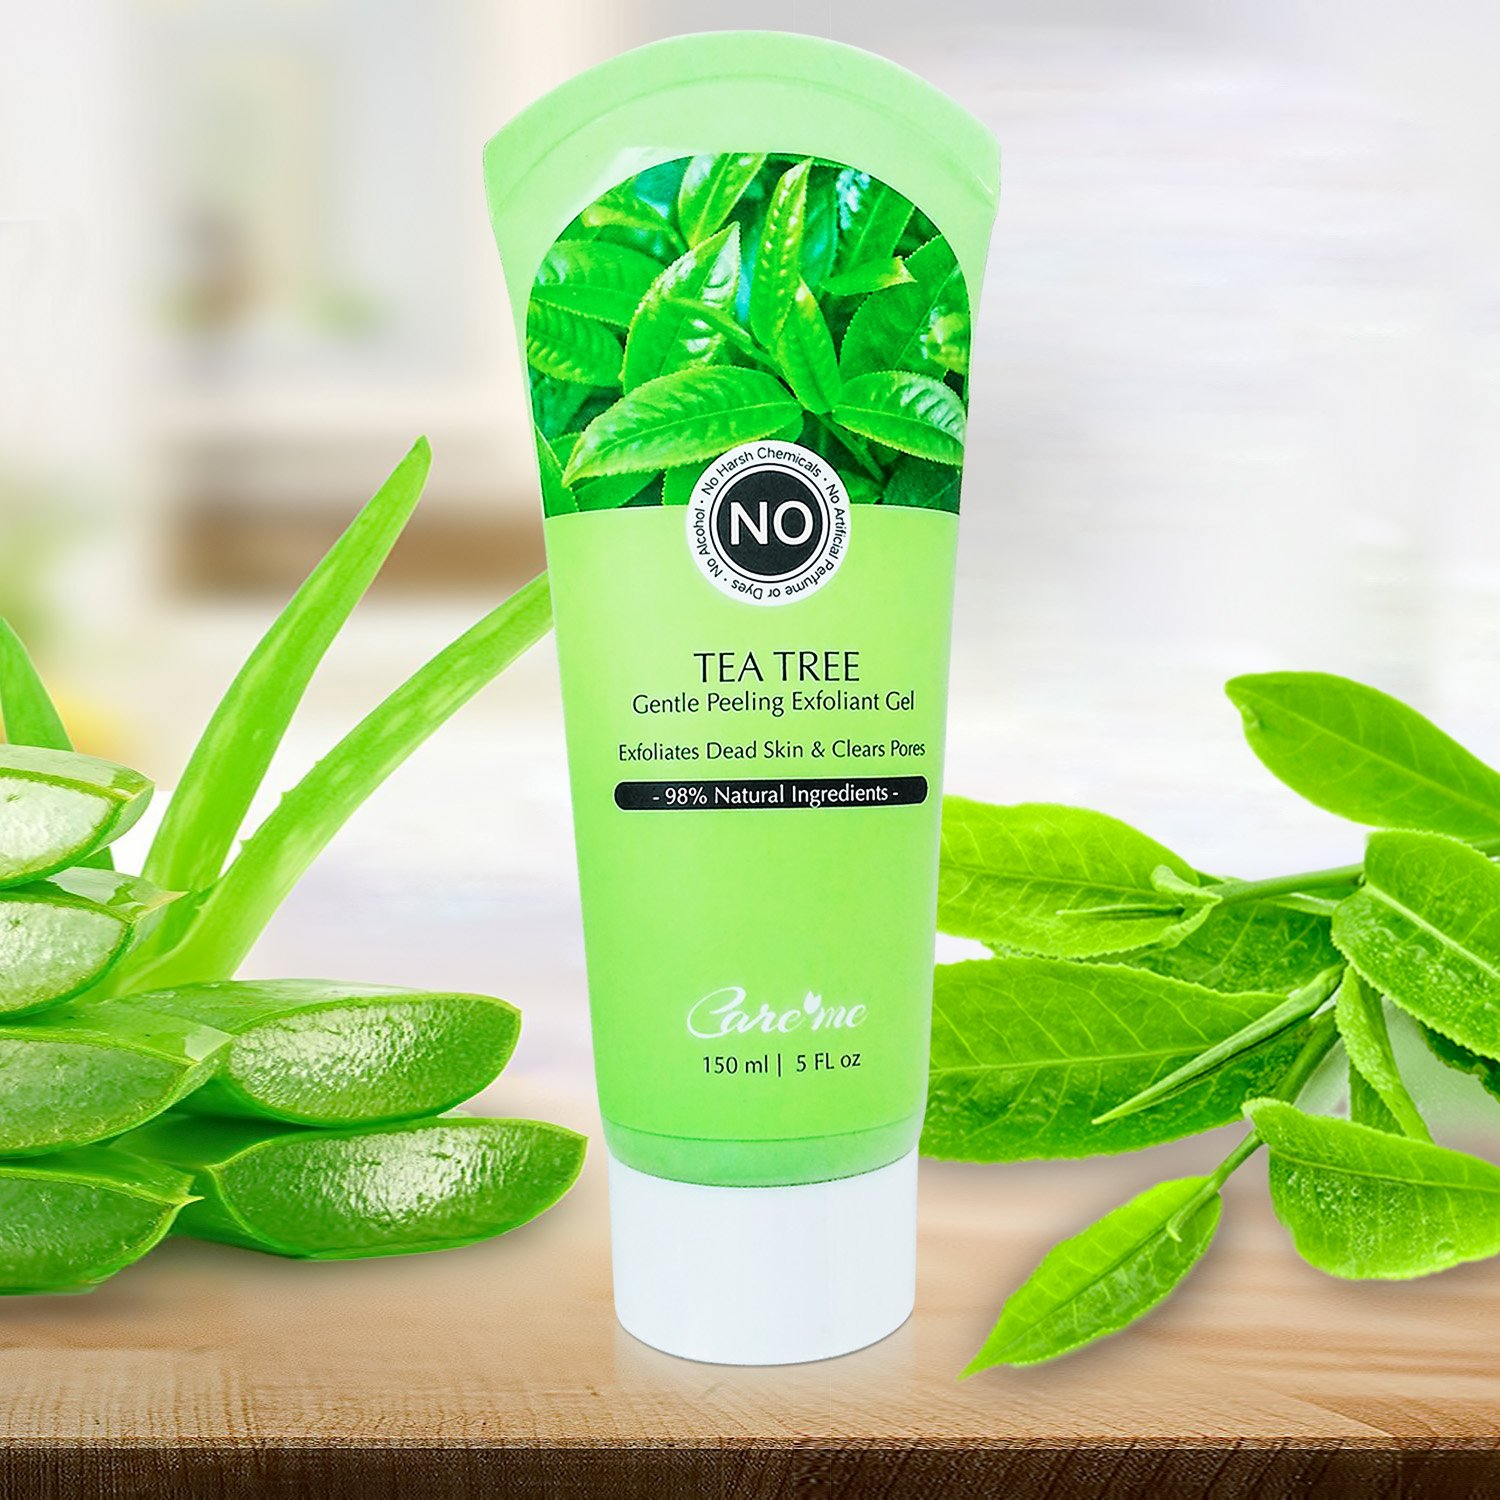 Exfoliating Peel Gel with with Tea Tree & Glycolic Acid - A Non-scrub Facial Exfoliator Instantly Removes Dead Skin Cells Revealing a Clear Refreshed Face - a Natural Exfoliant for All Skin Types